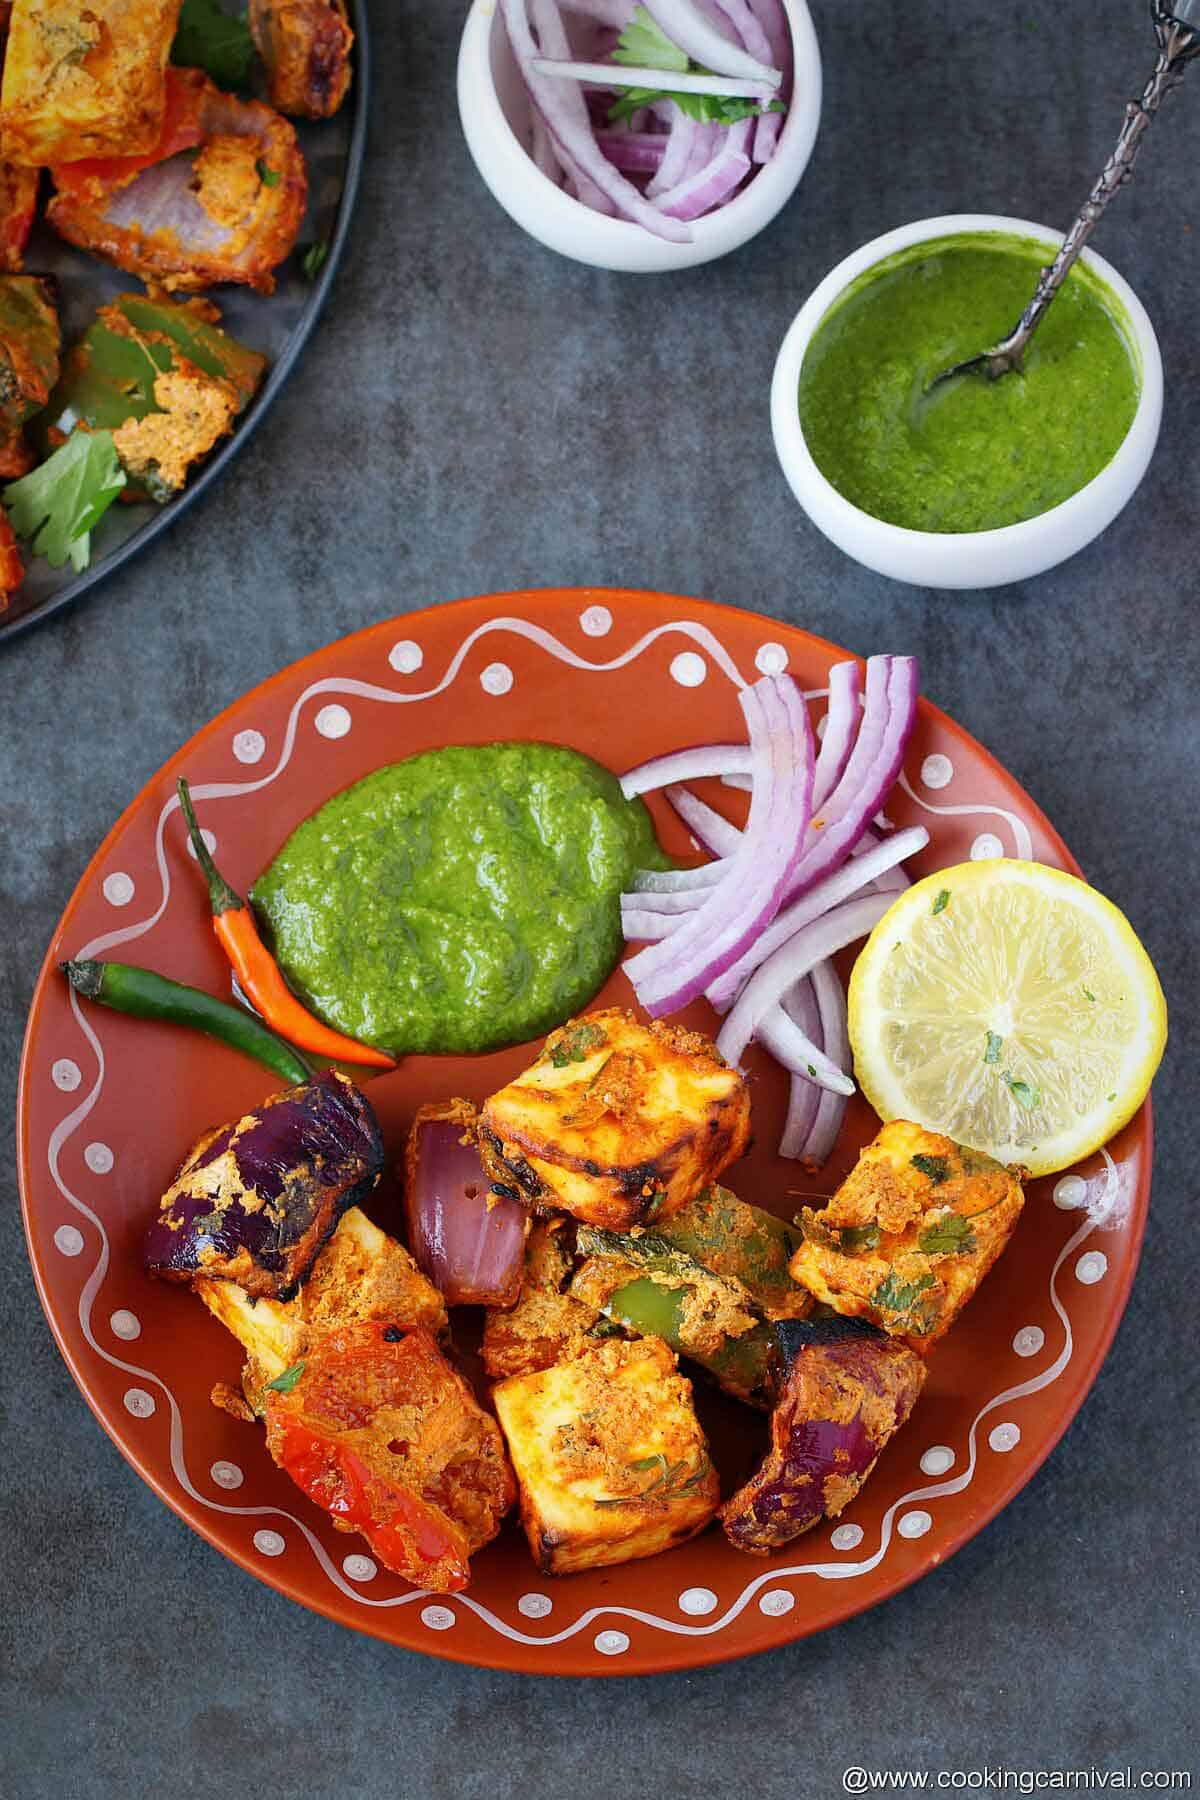 Paneer tikka served in a traditional indian plate with mint chutney, onion and lemon slices